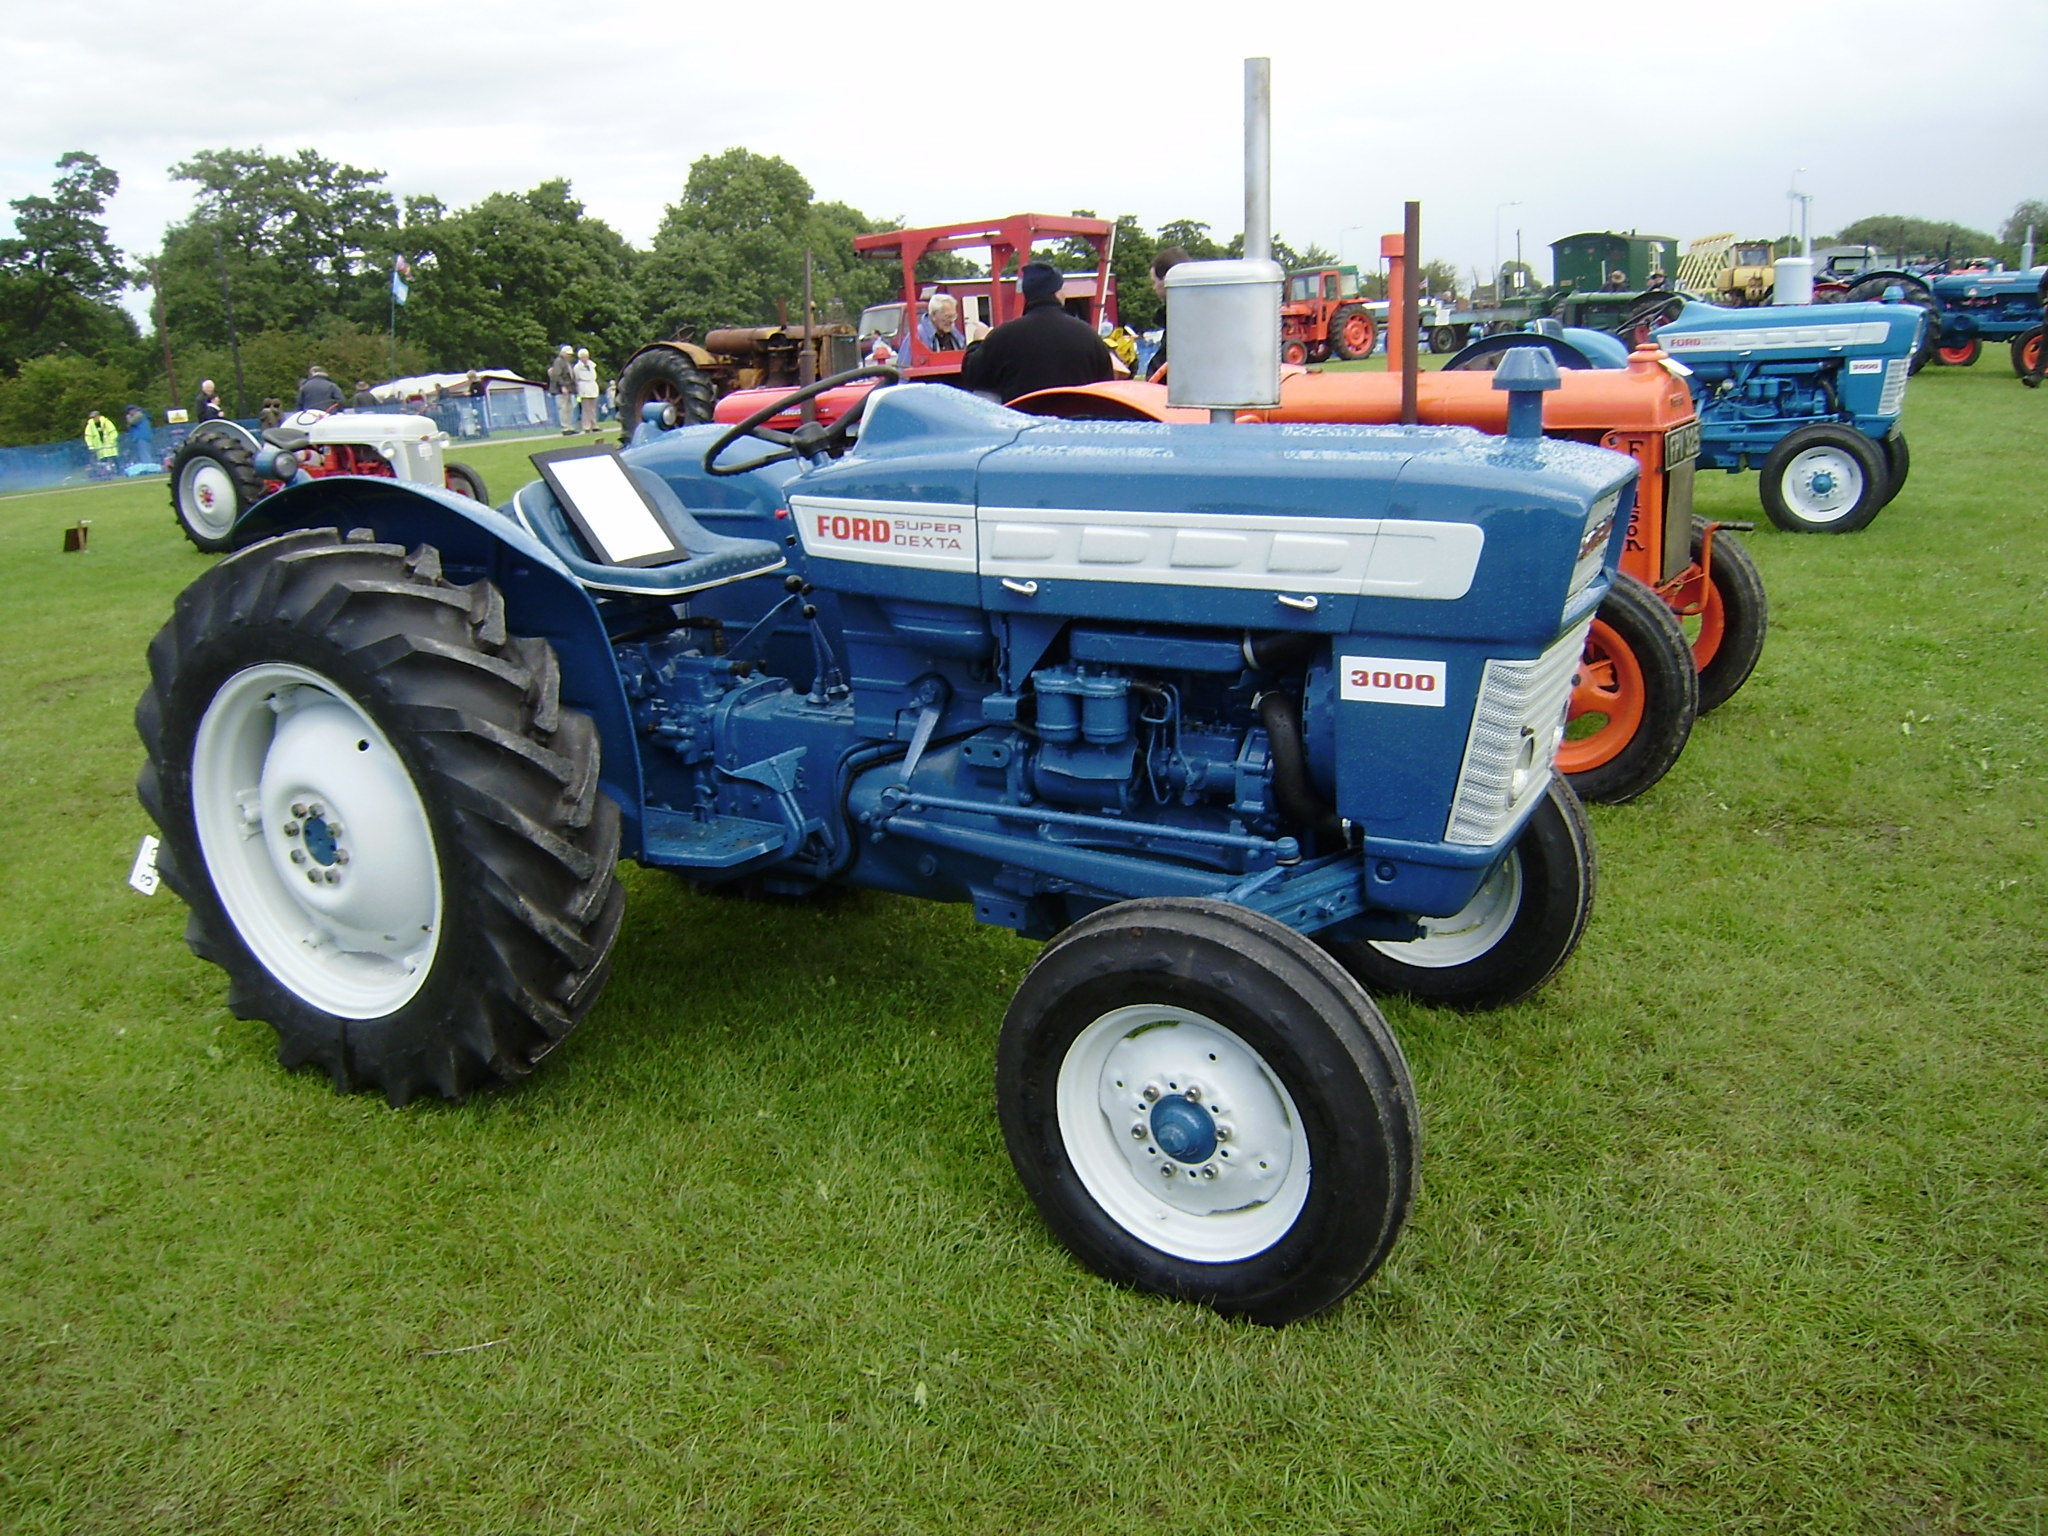 1964 Ford 3000 Tractor : Ford tractors tractor construction plant wiki the